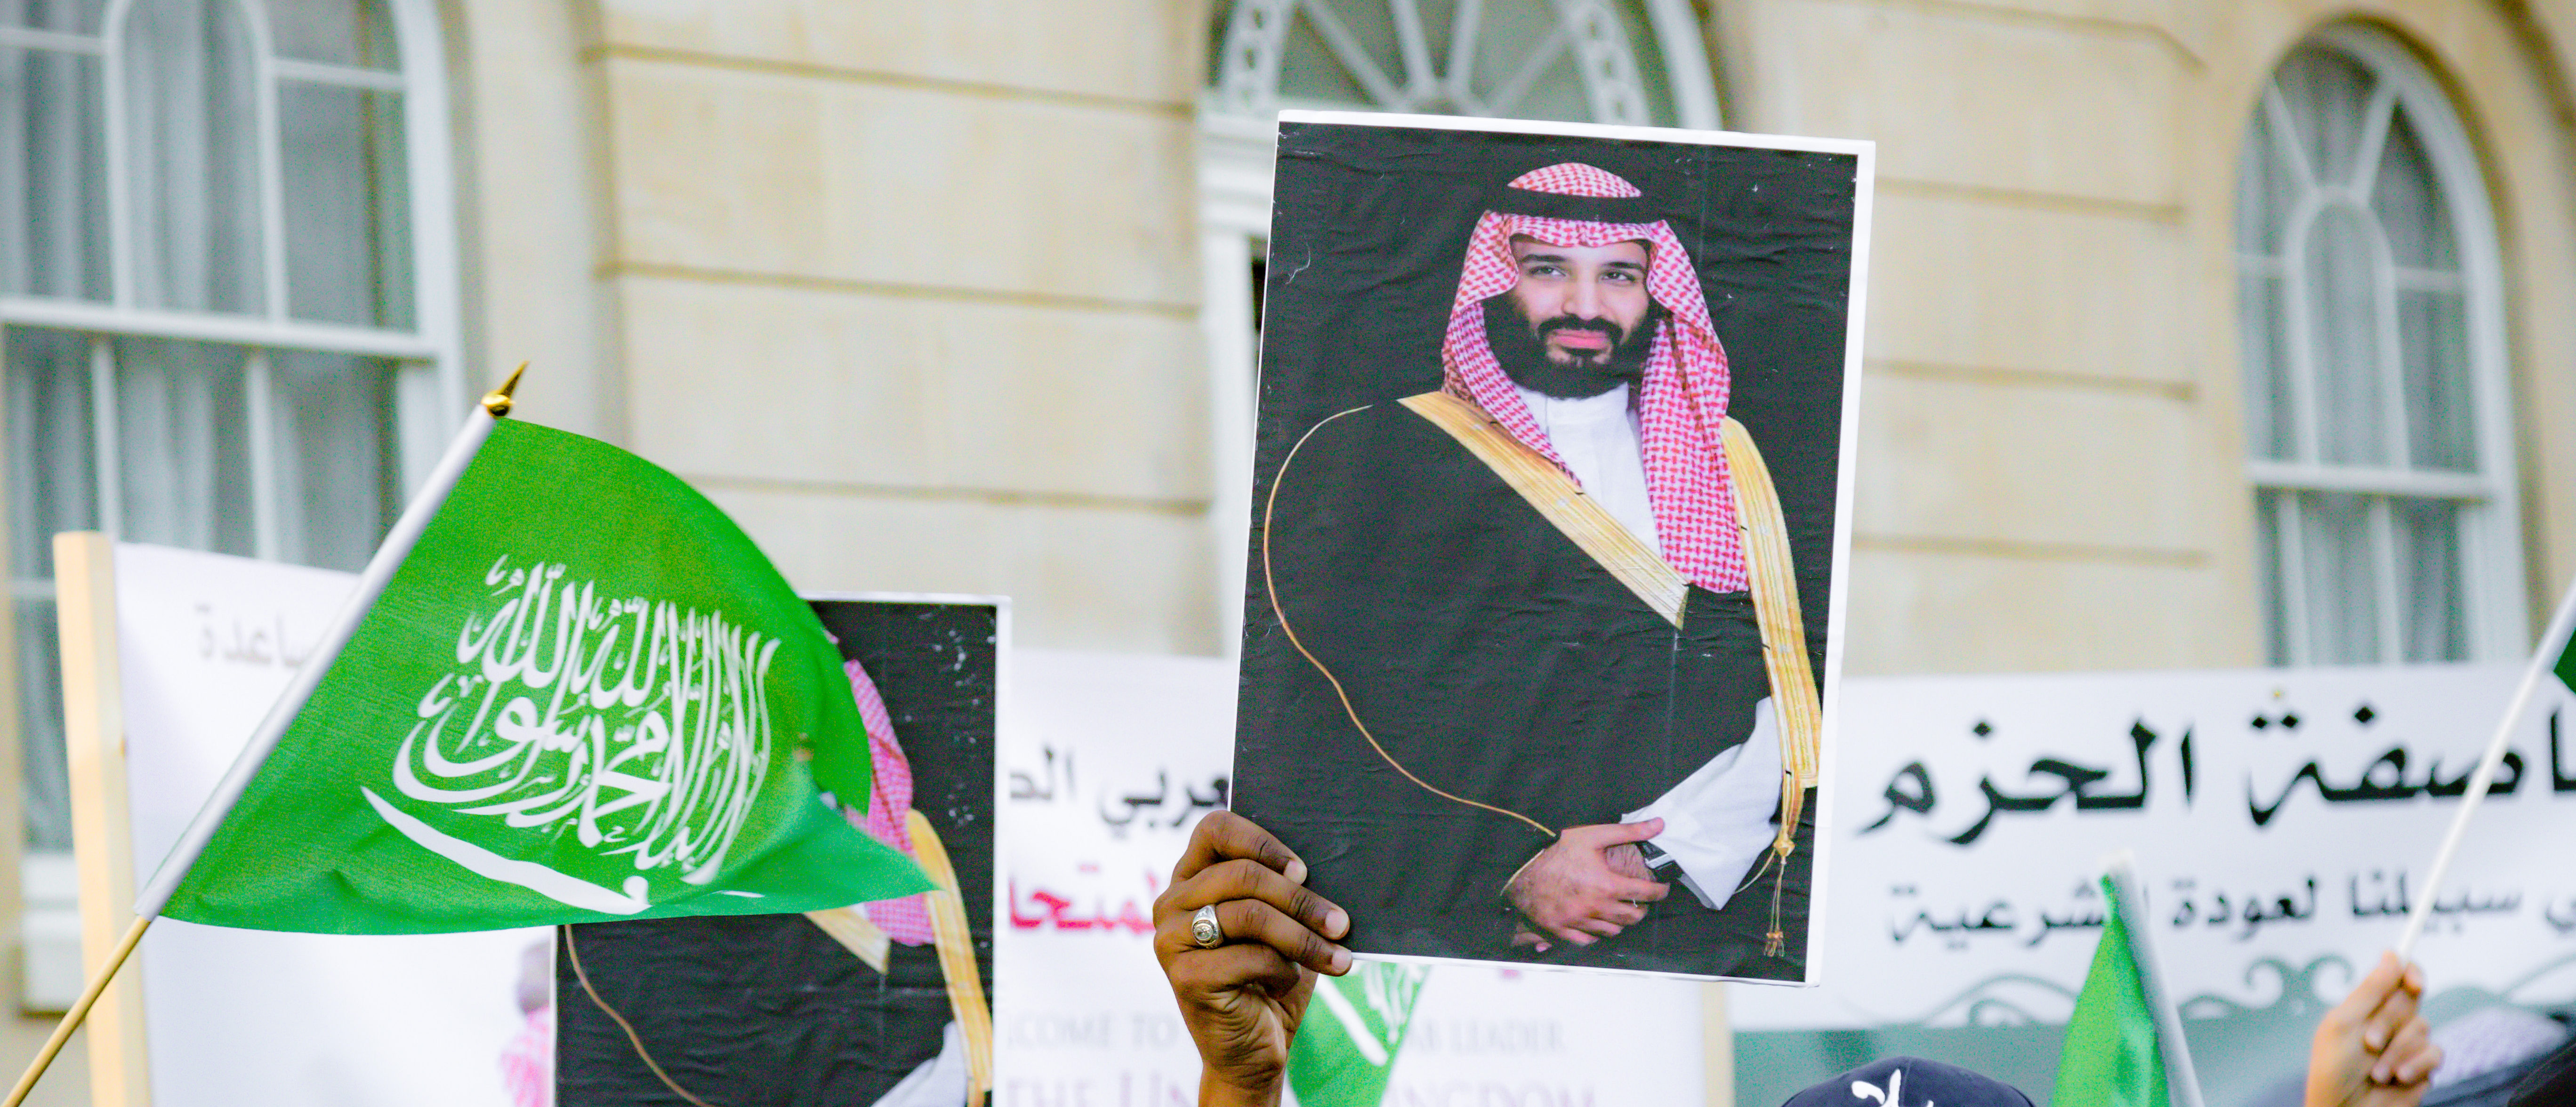 Downing Street, London, United Kingdom, 07th March 2018:- Pro Saudi Arabia protesters counter protest the Stop The War Coalition protest against the visit to the UK by the Crown Prince/Shutterstock